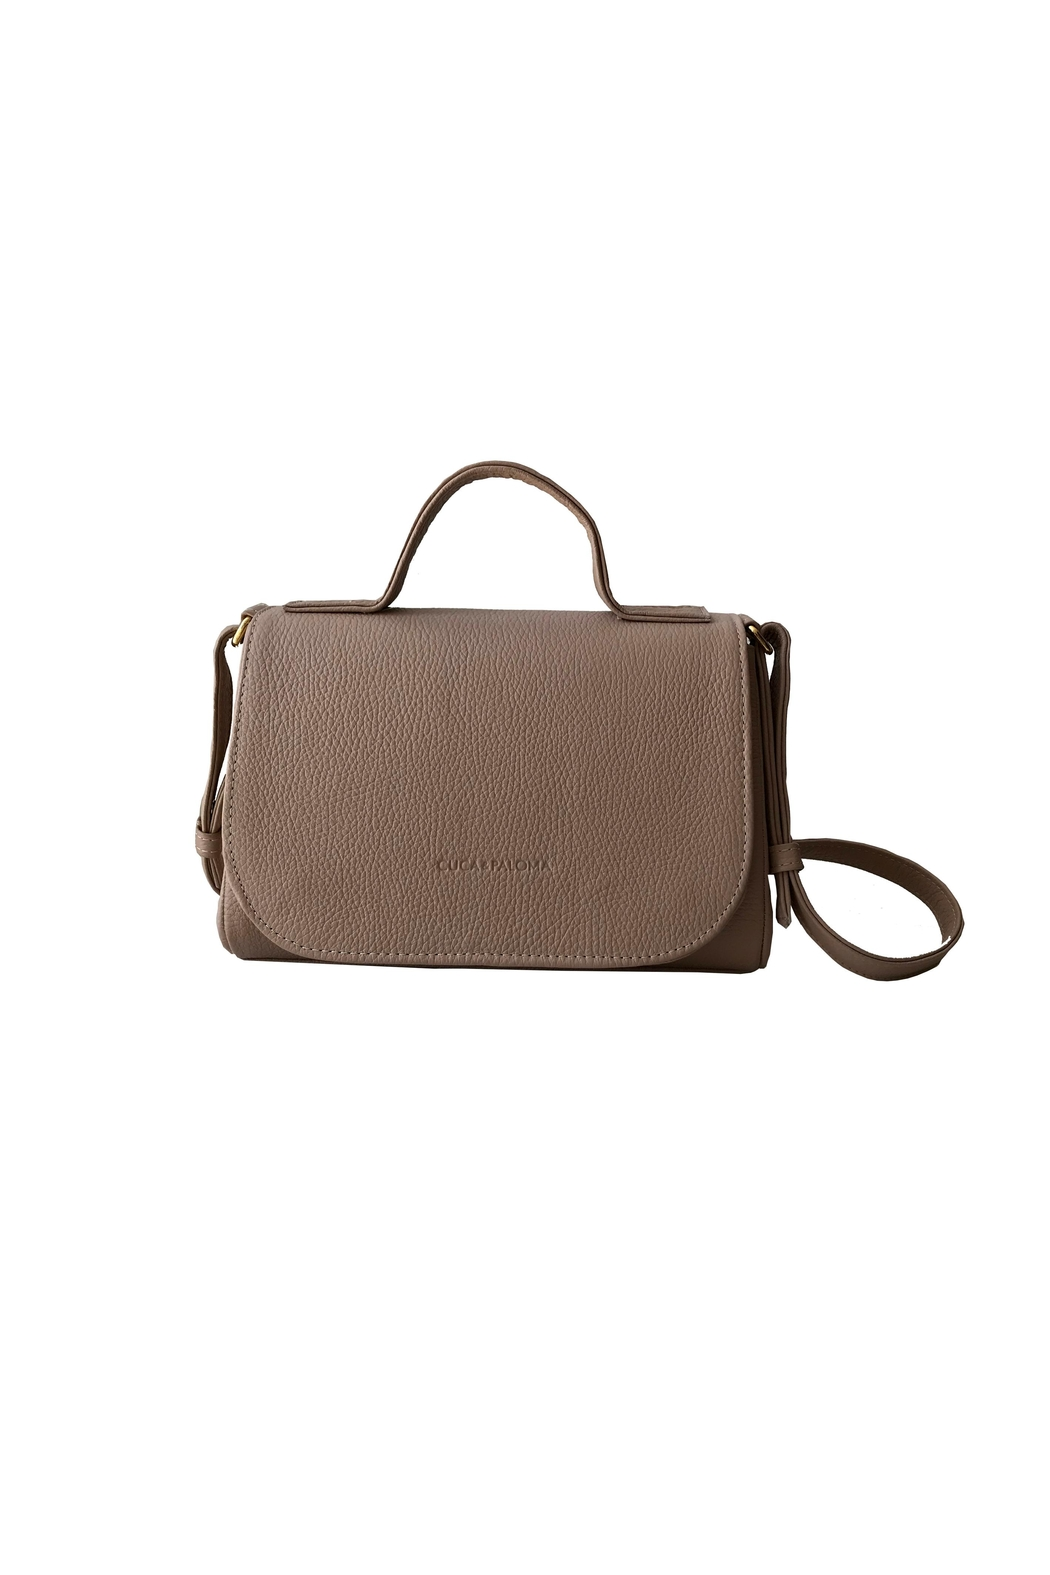 Cuca y Paloma Paloma Bag Nude - Front Cropped Image